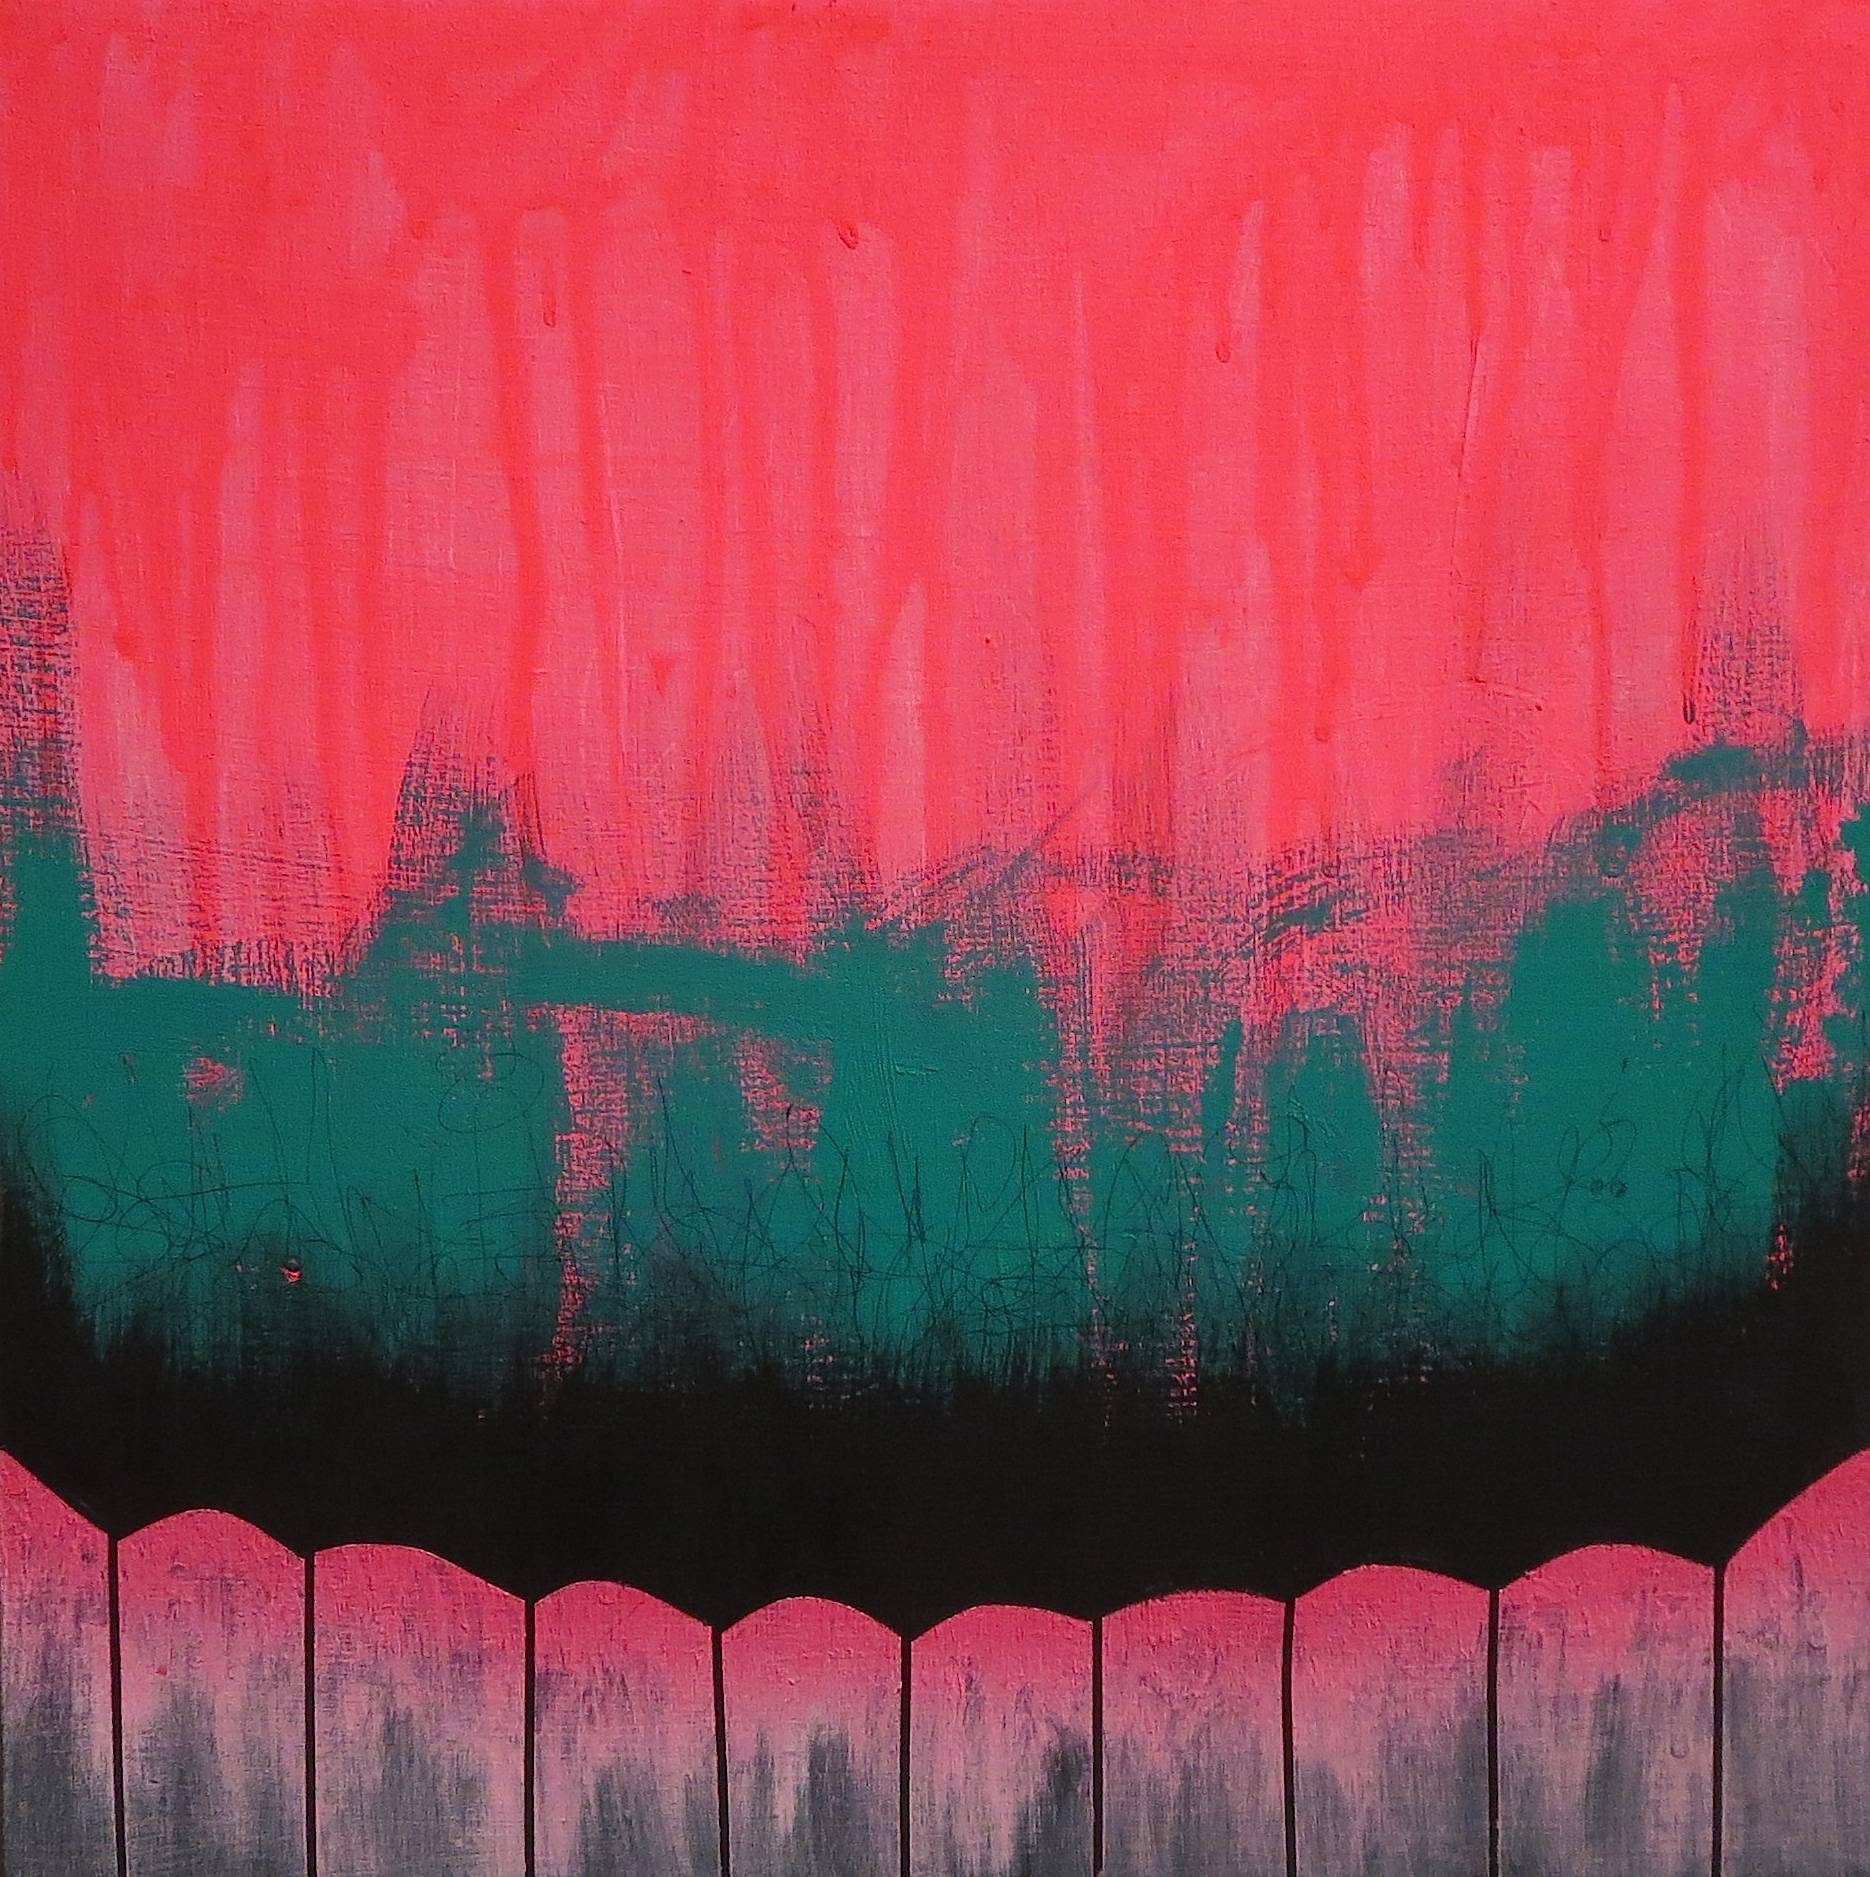 """""""Gritty City Pink #2"""" 12 x 12 inches, acrylic and ink on cradled wood panel, 2014, $250"""